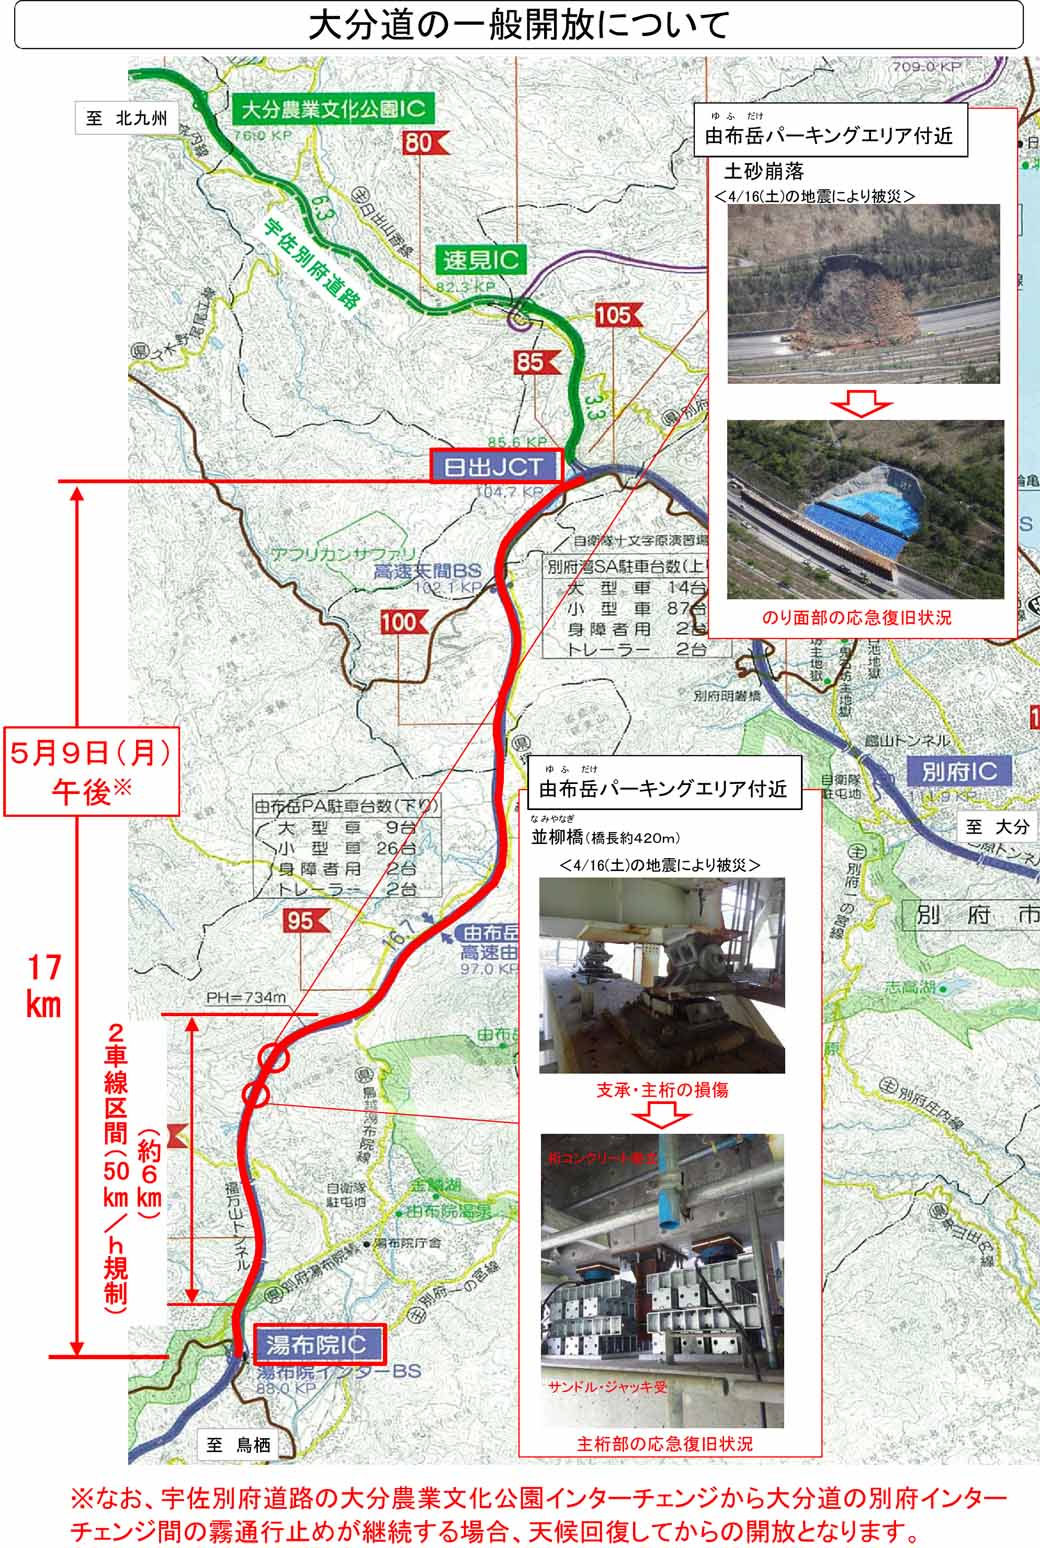 ministry-of-land-infrastructure-and-transport-the-general-open-oita-motorway-25-days-all-of-the-high-speed-road-of-kyushu-recovery-for-the-first-time-in20160509-2